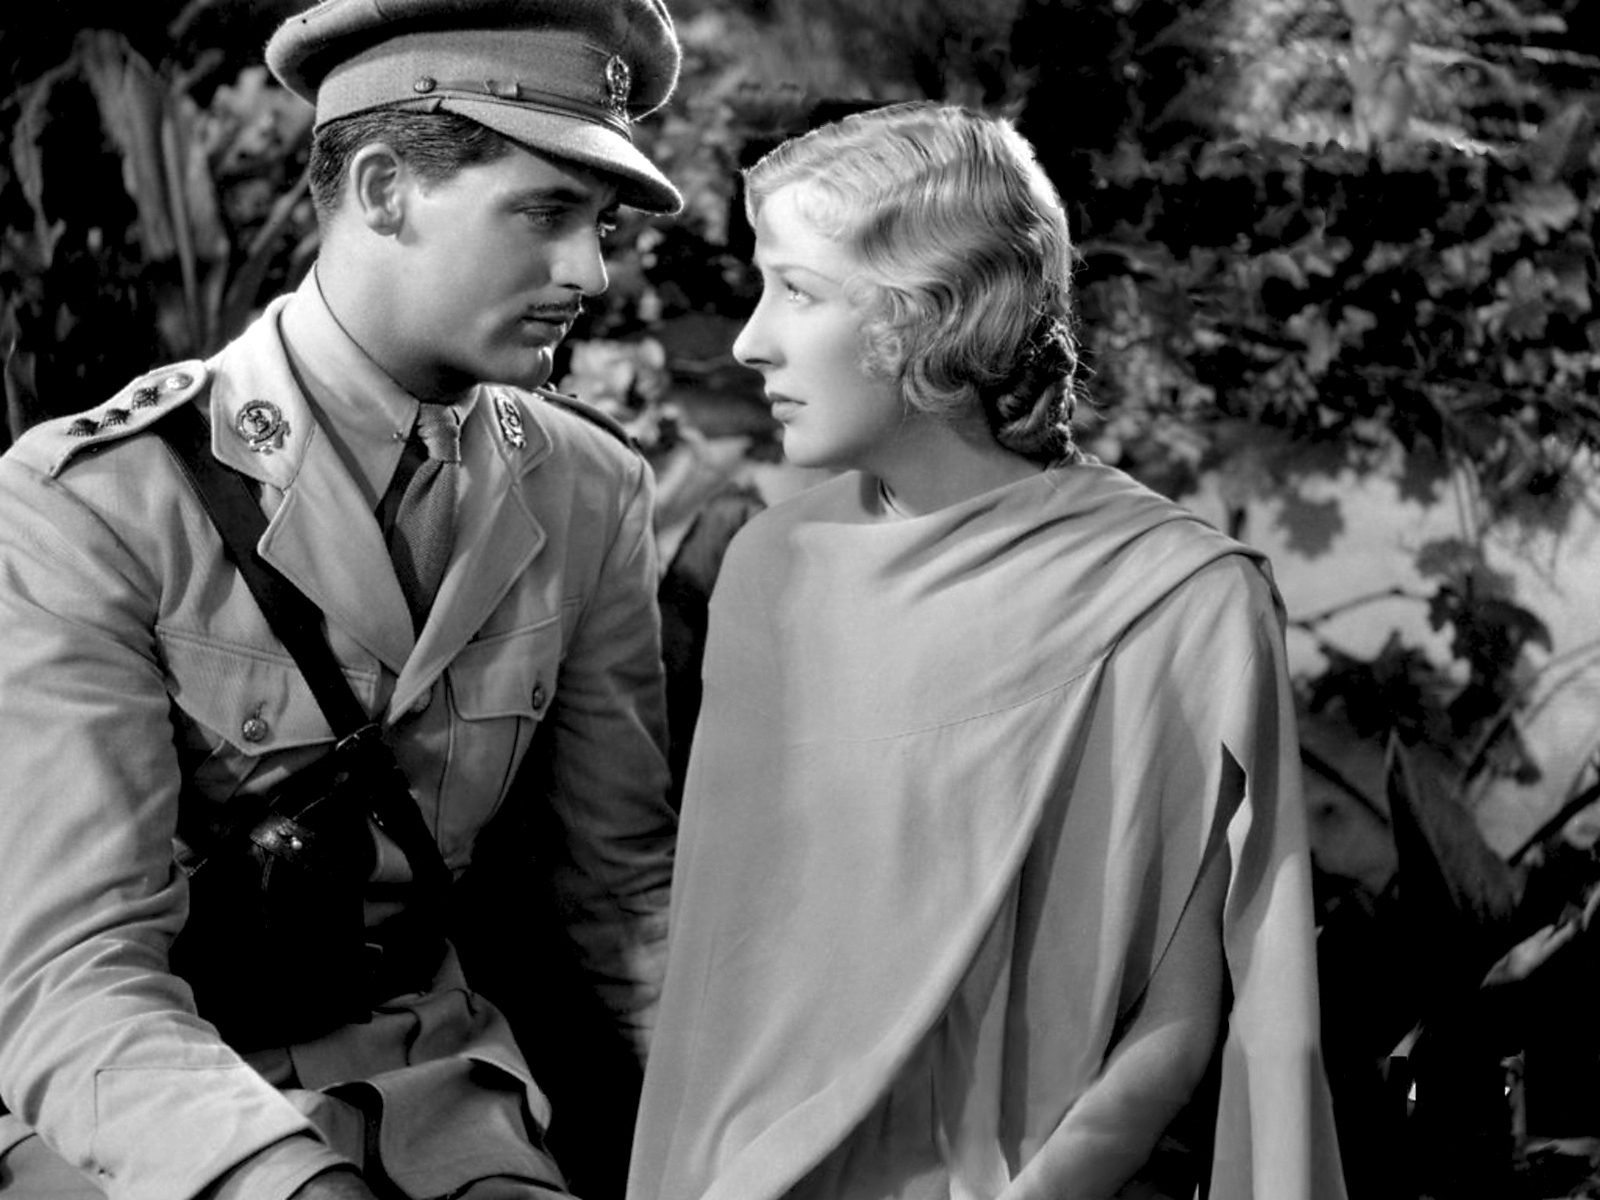 Gertrude Michael in The Last Outpost with With Cary Grant